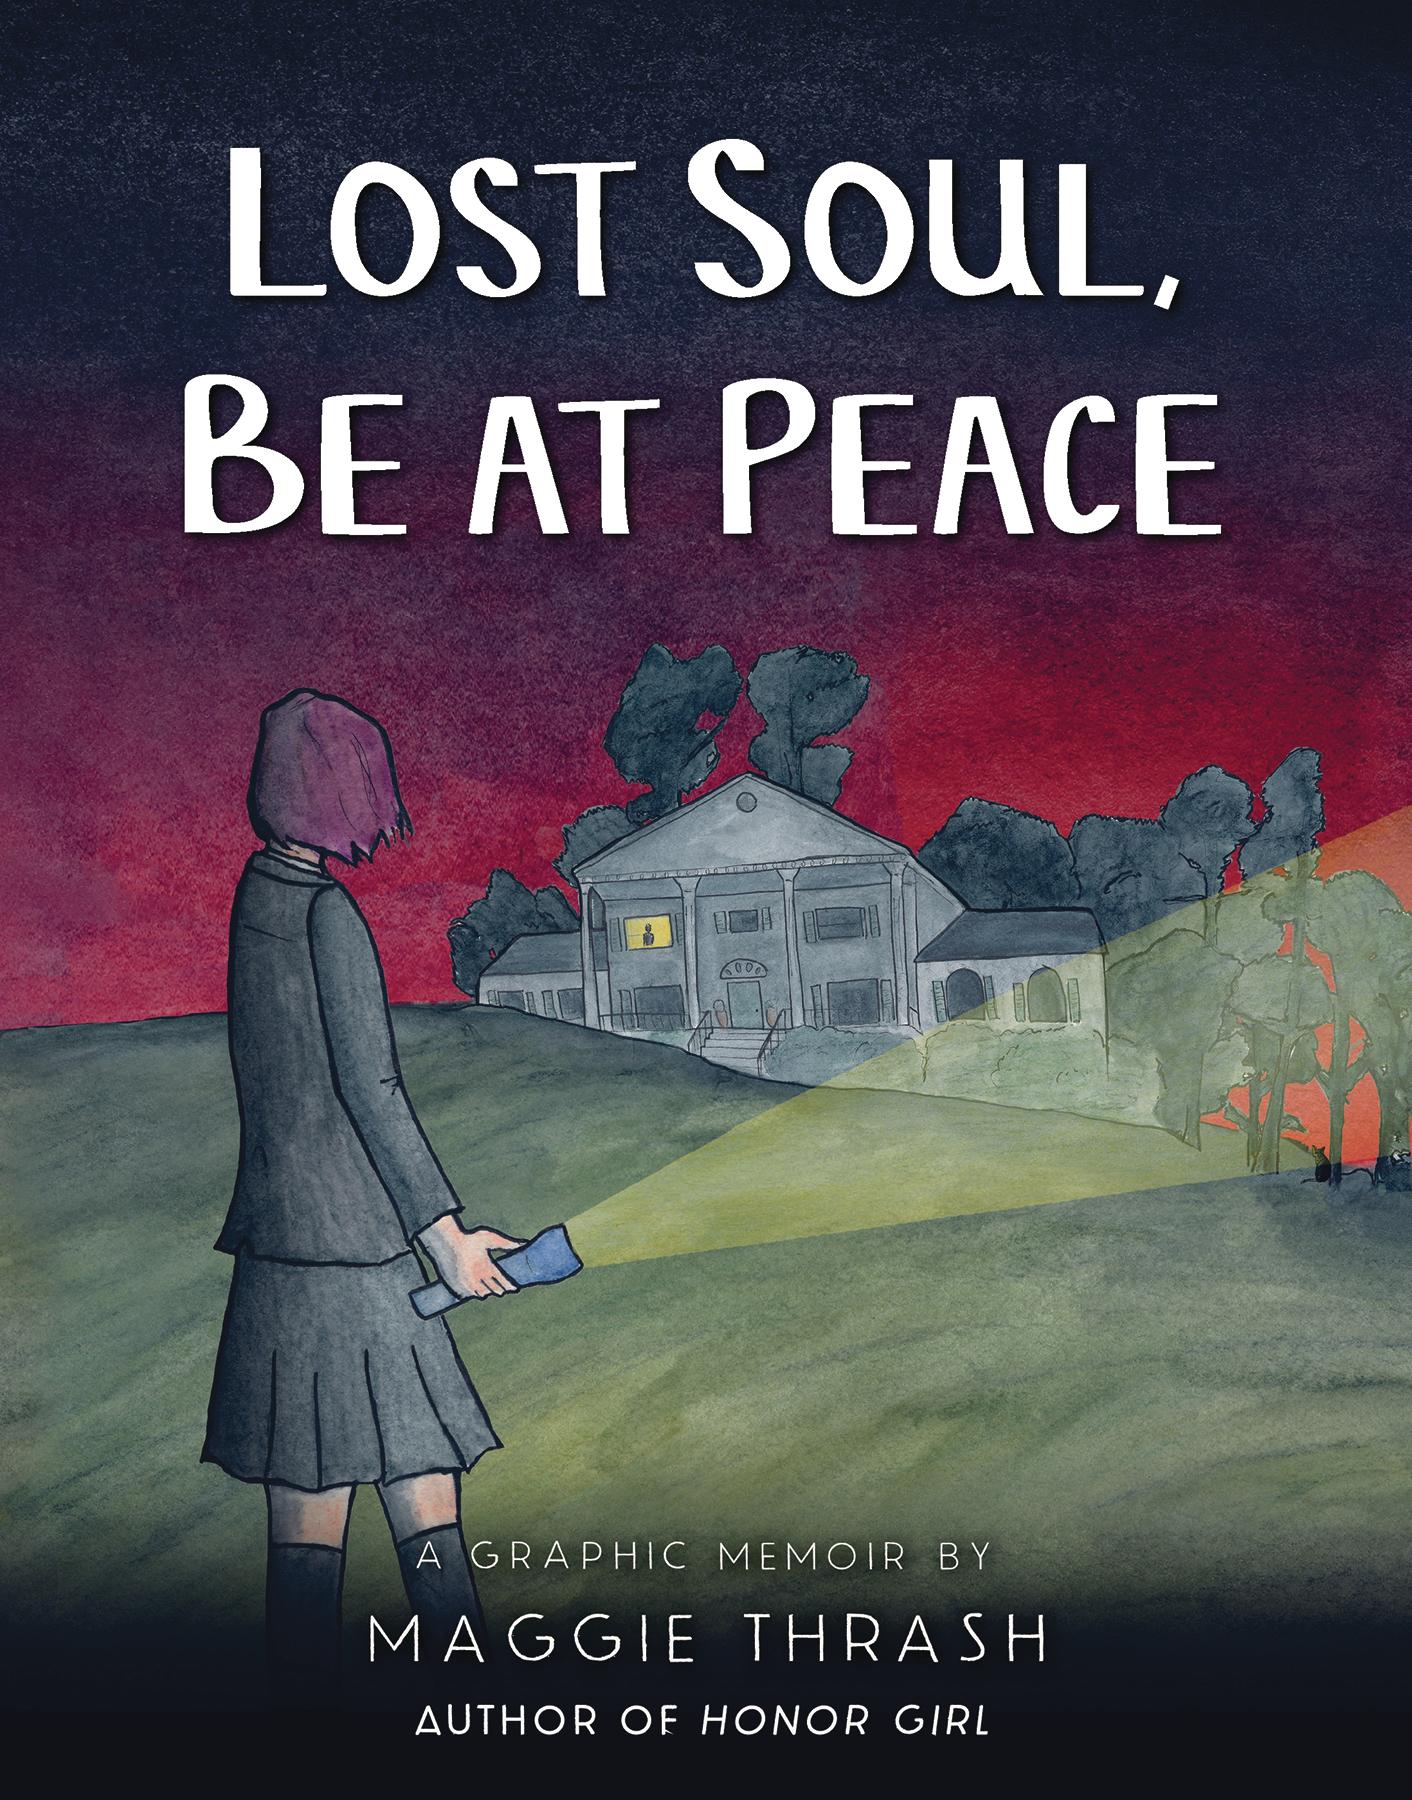 LOST SOUL BE AT PEACE GRAPHIC MEMOIR (MR)